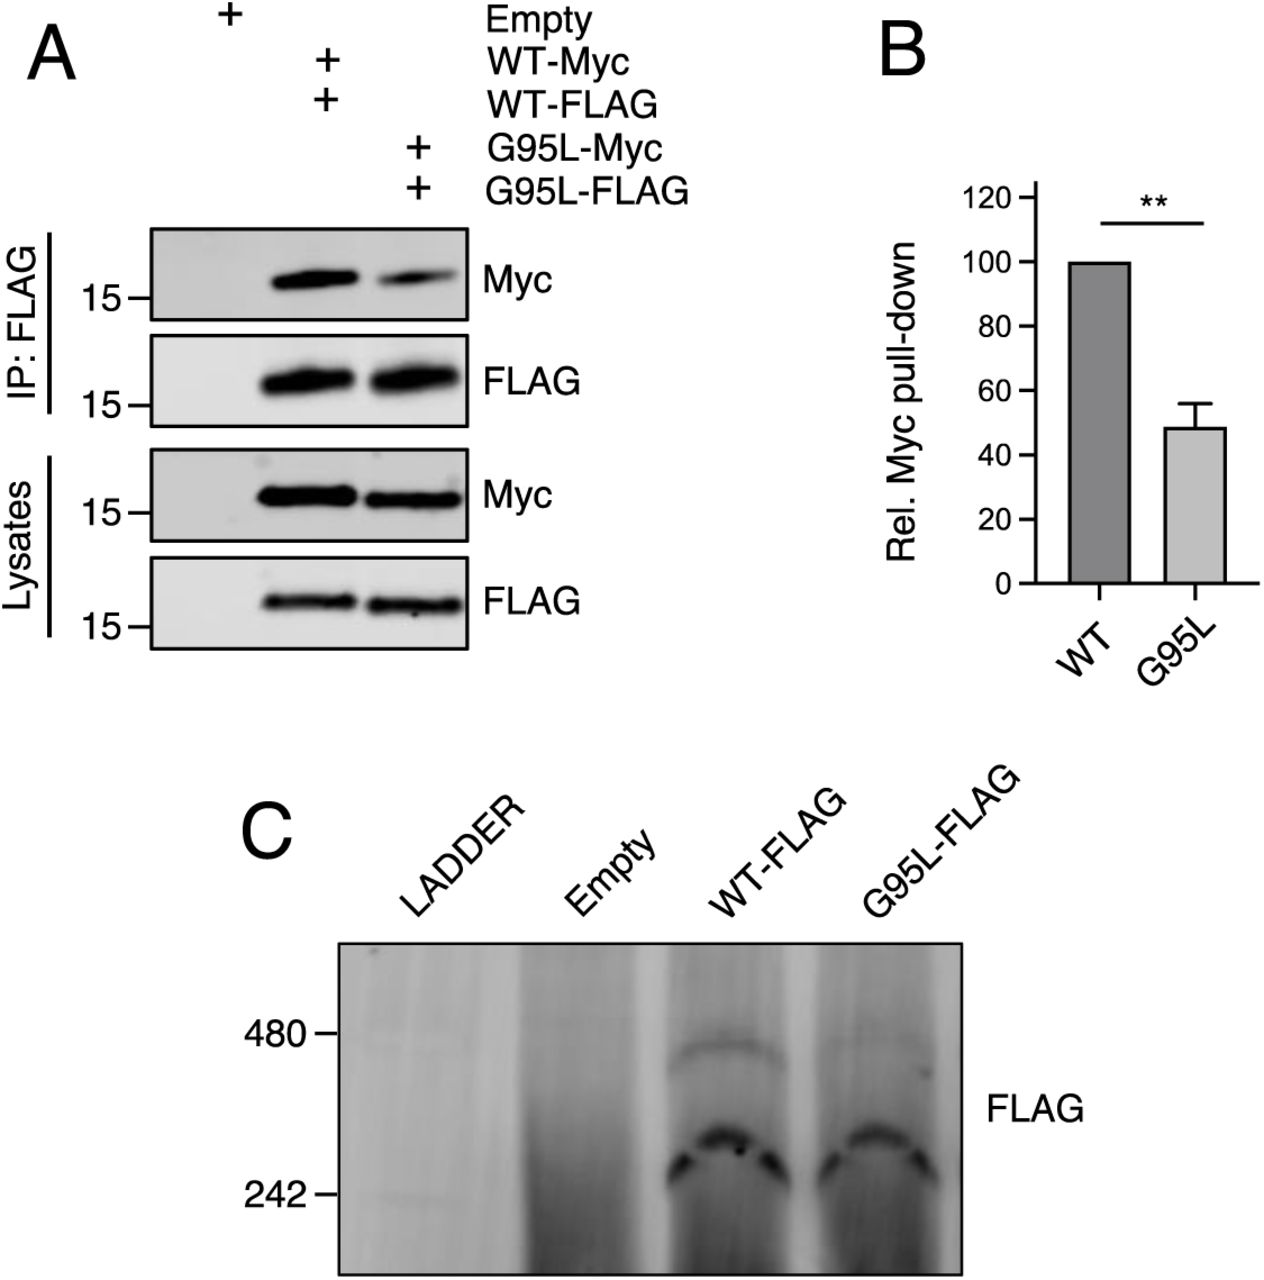 glycine-95 regulates oligomerization of IFITM3 in bulk cell lysates. (A) HEK293T were transiently transfected with empty pQCXIP or the following pairs: IFITM3-FLAG and IFITM3-myc or G95L-FLAG and G95L-myc. Whole cell lysates were produced under mildly denaturing conditions and immunoprecipitation (IP) using anti-FLAG antibody was performed. IP fractions and volumes of whole cell lysates were subjected to SDS-PAGE and Western blot analysis. Immunoblotting was performed with anti-FLAG and anti-myc. Number and tick marks indicate size (kilodaltons) and position of protein standards in ladder. (B) Levels of IFITM3-myc (either WT or G95L) co-immunoprecipitated by anti-FLAG IP were quantified from conditions in (A). Results represent the mean of three independent experiments. Error bars indicate standard error. (C) HEK293T were transiently transfected with empty pQCXIP, WT IFITM3-FLAG or G95L-FLAG. Cell lysates were produced with 1% digitonin and blue native PAGE was performed, followed by immunoblotting with anti-FLAG. Number and tick marks indicate size (kilodaltons) and position of protein standards in ladder. Statistical analysis was performed using student's T test. *, P